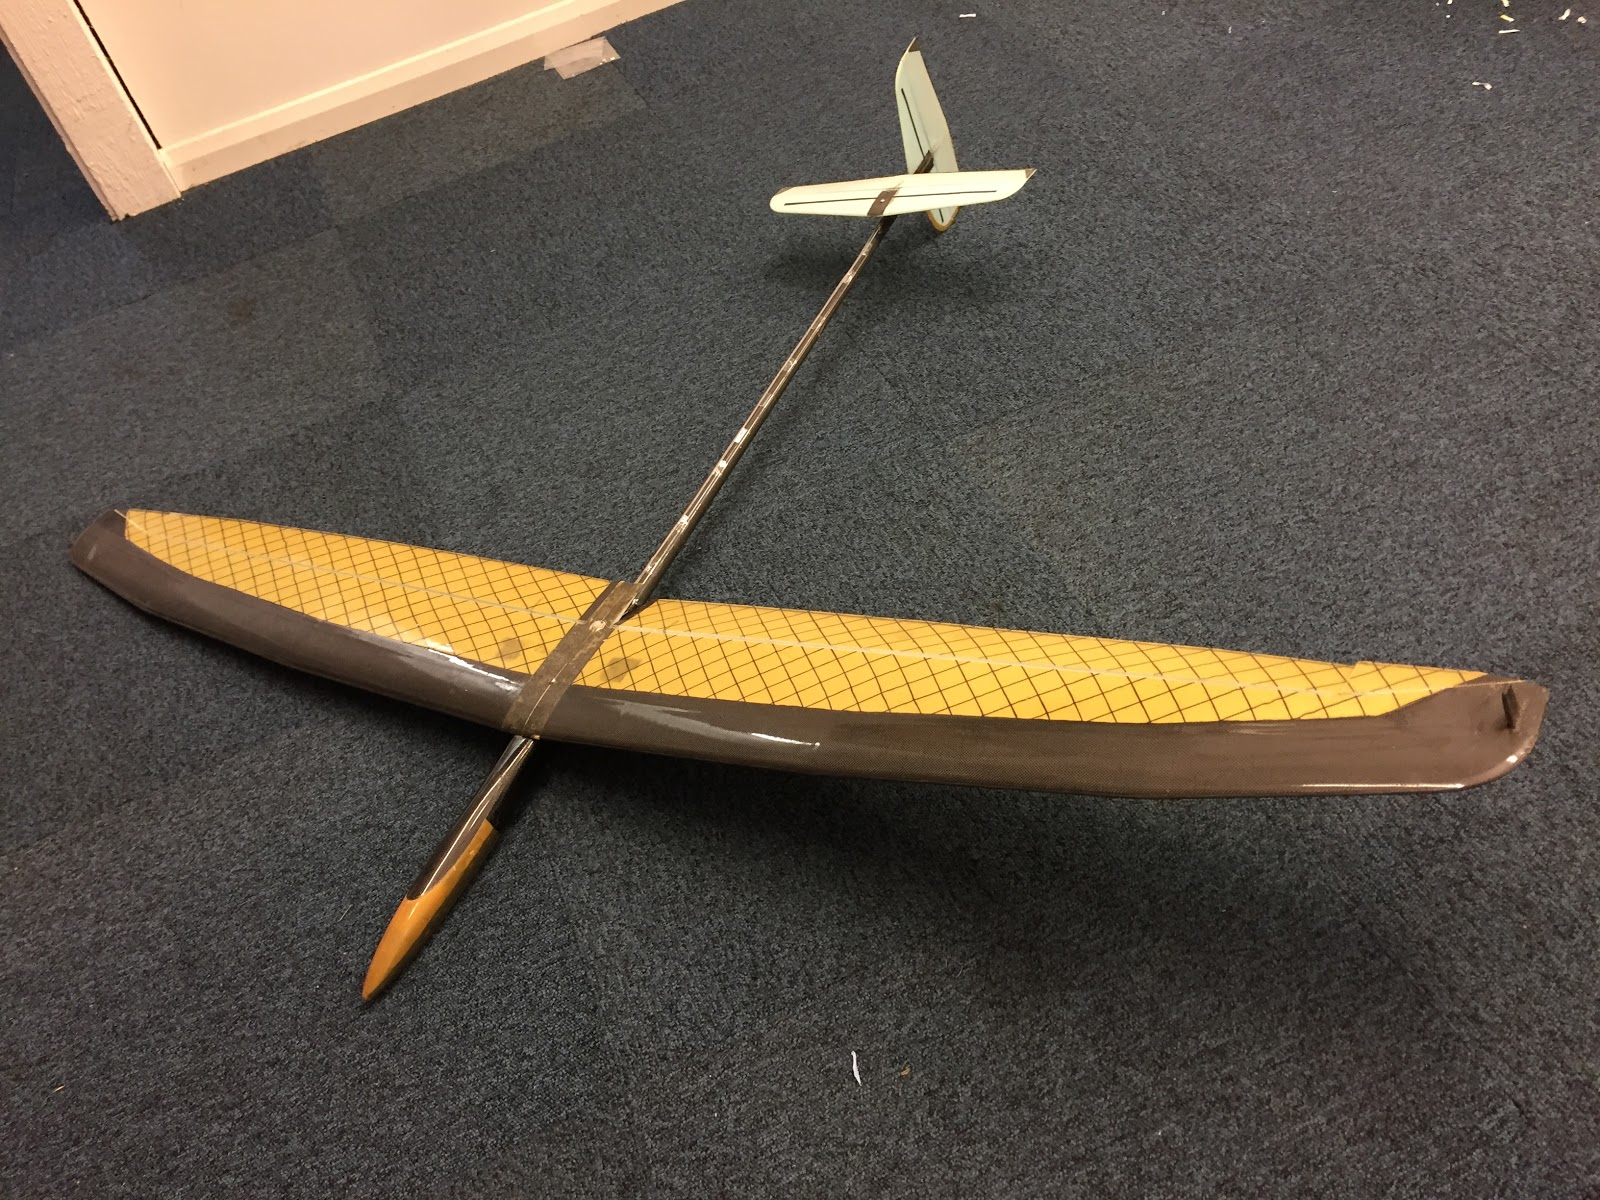 Slope Soaring Sussex: DLG (Discus Launch Gliders)